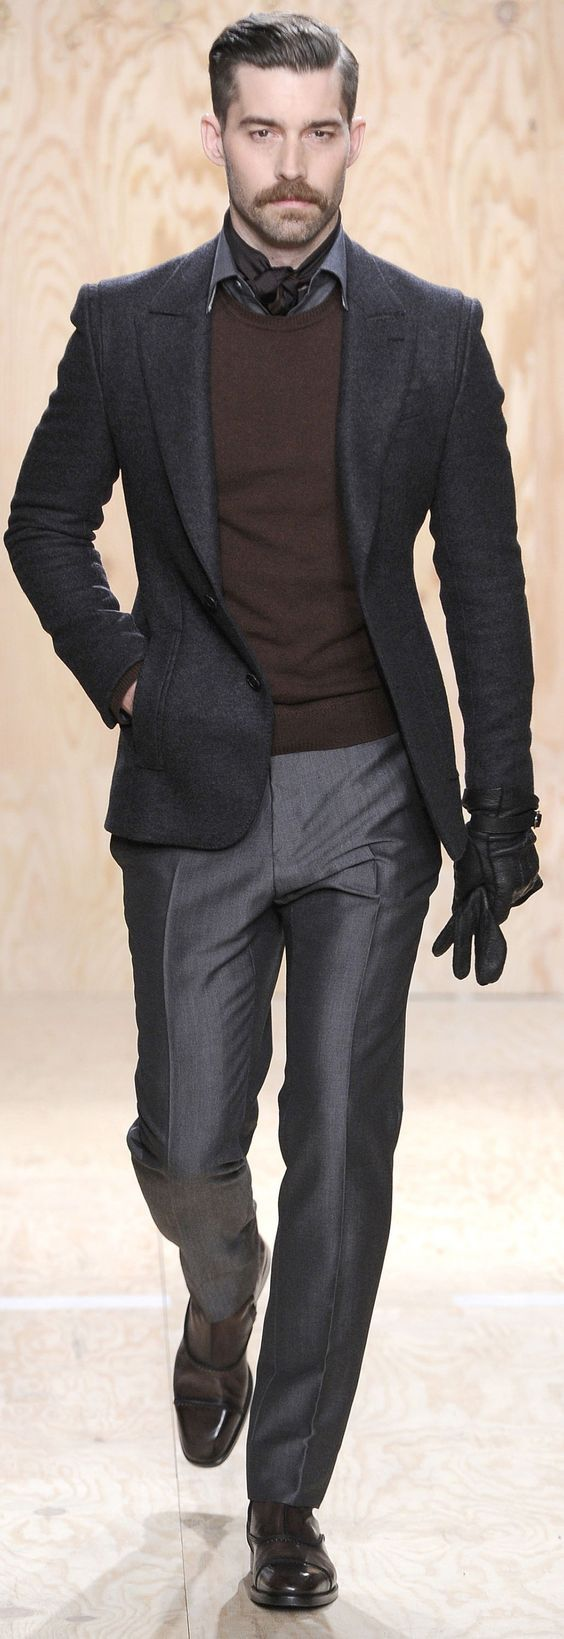 everybodylovessuits: This one feels casual but looks smart and elegant. Way to…